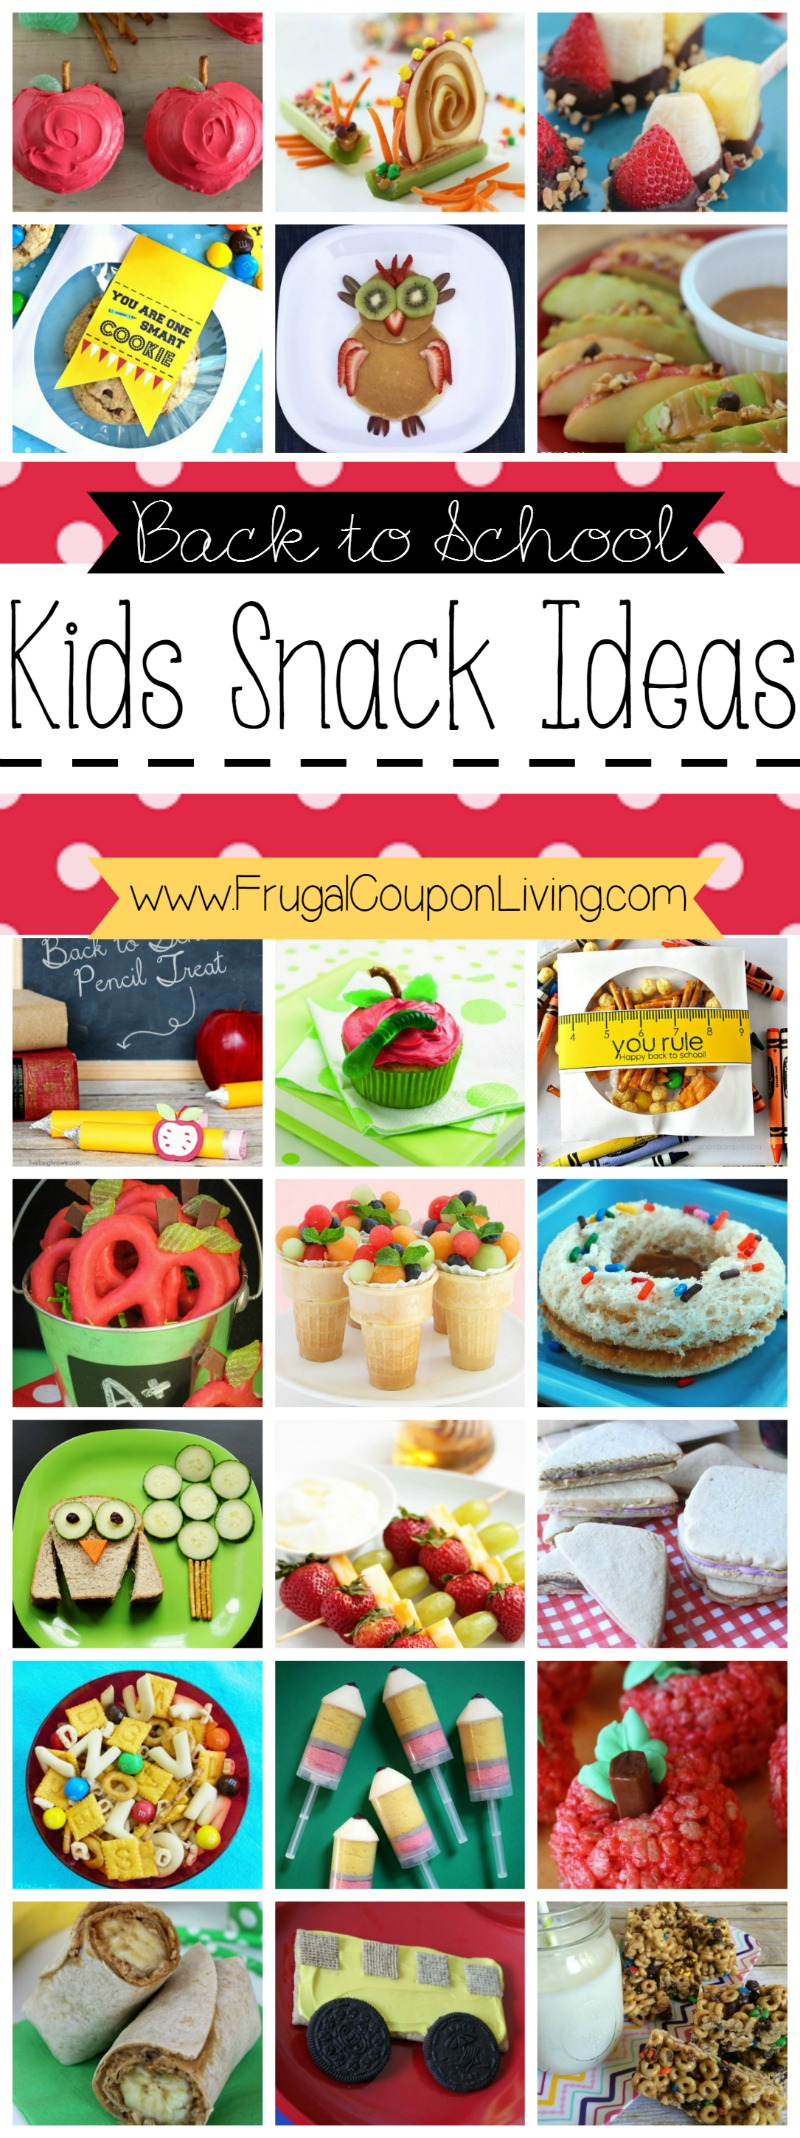 first-day-of-school-back-to-school-kids-snack-ideas-frugal-coupon-living